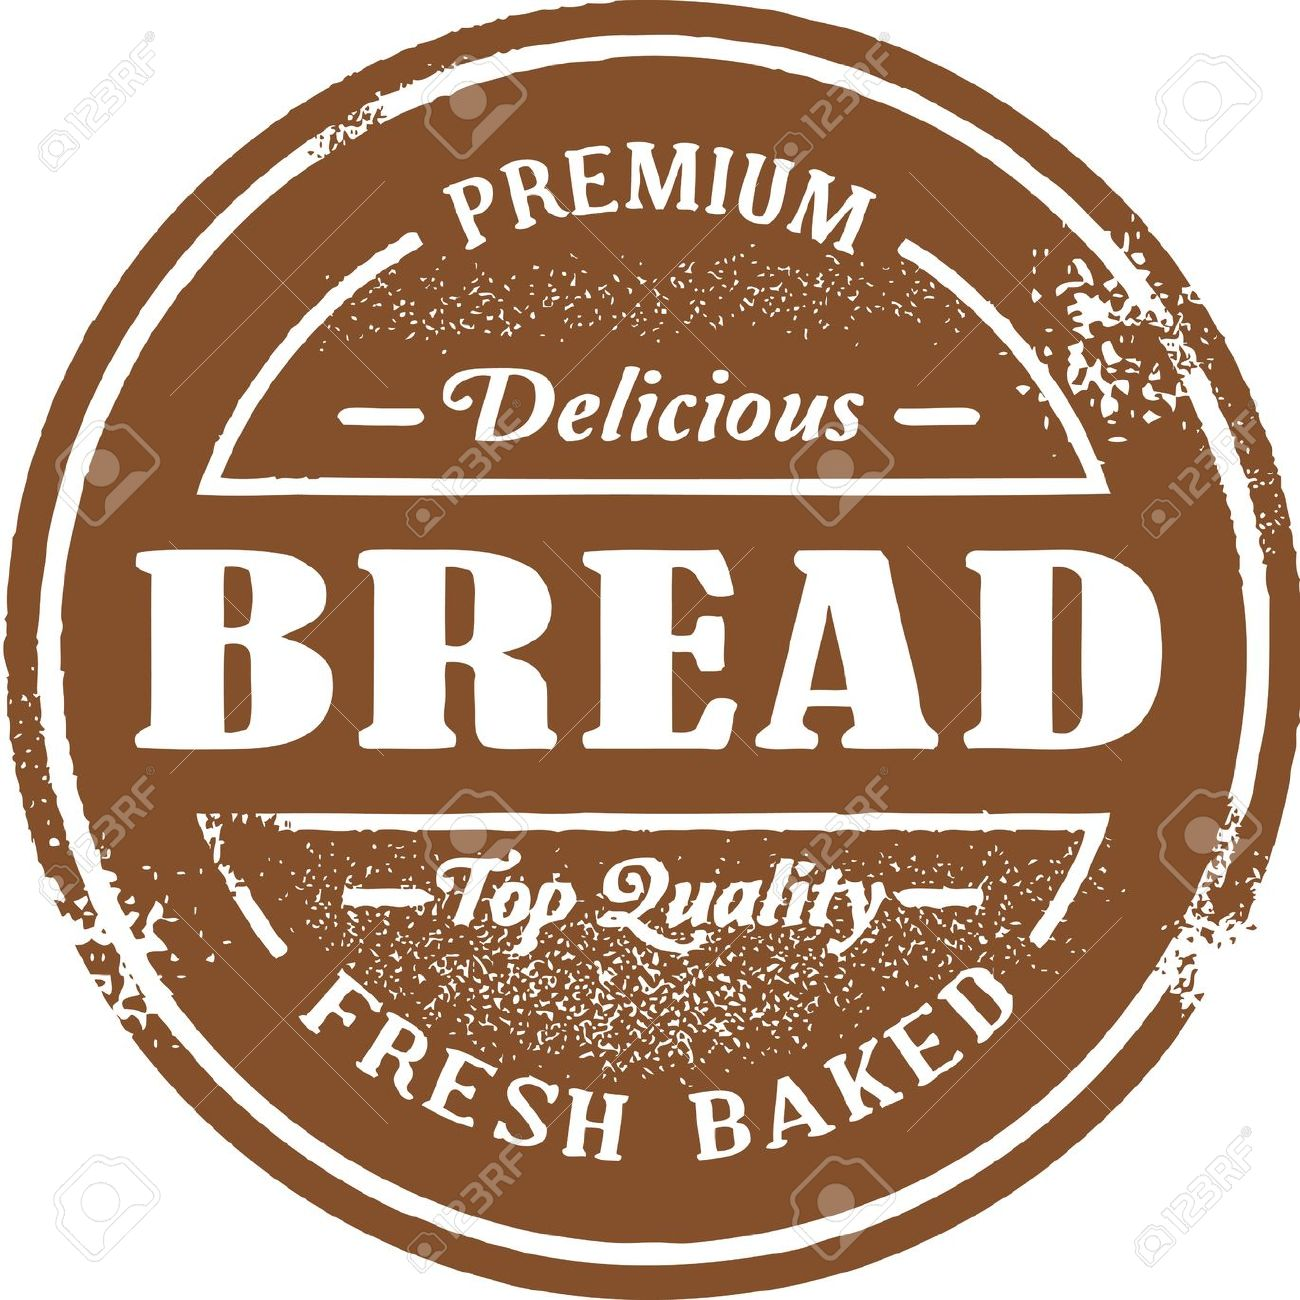 Fresh Baked Bread Stamp Royalty Free Cliparts, Vectors, And Stock.